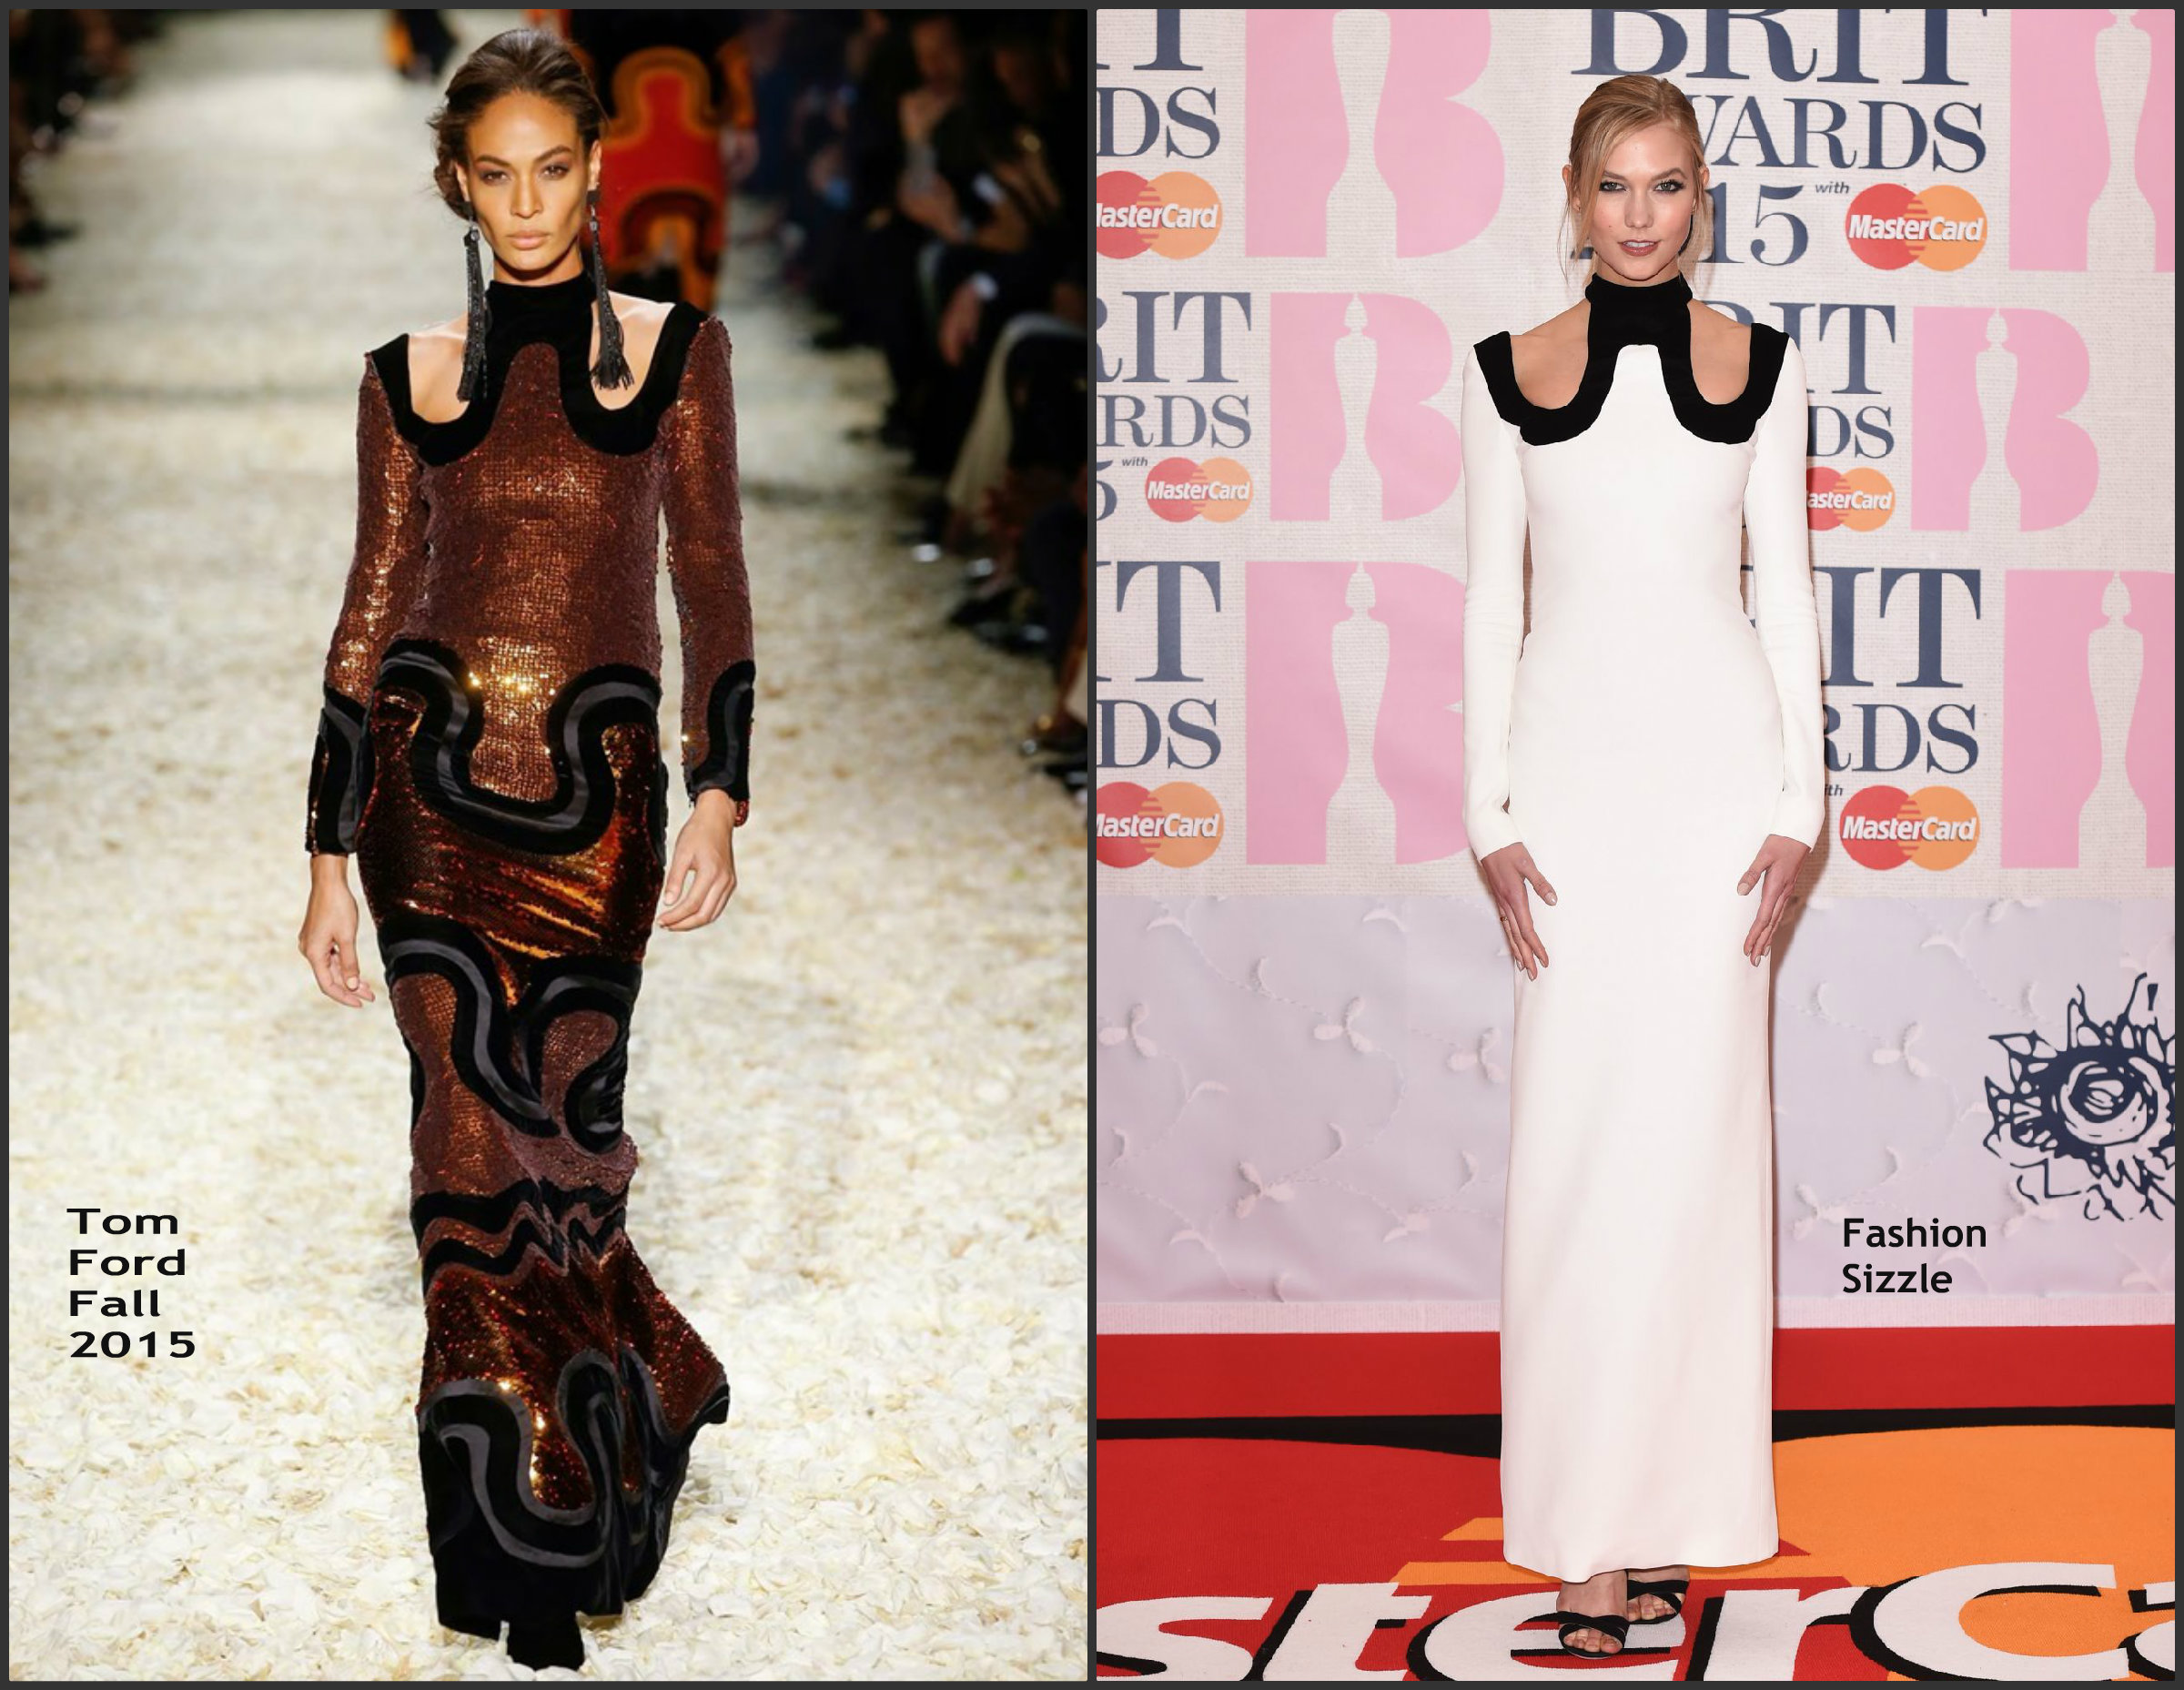 Karlie-Kloss-In-Tom-Ford-at-the-2015-BRIT-Awards